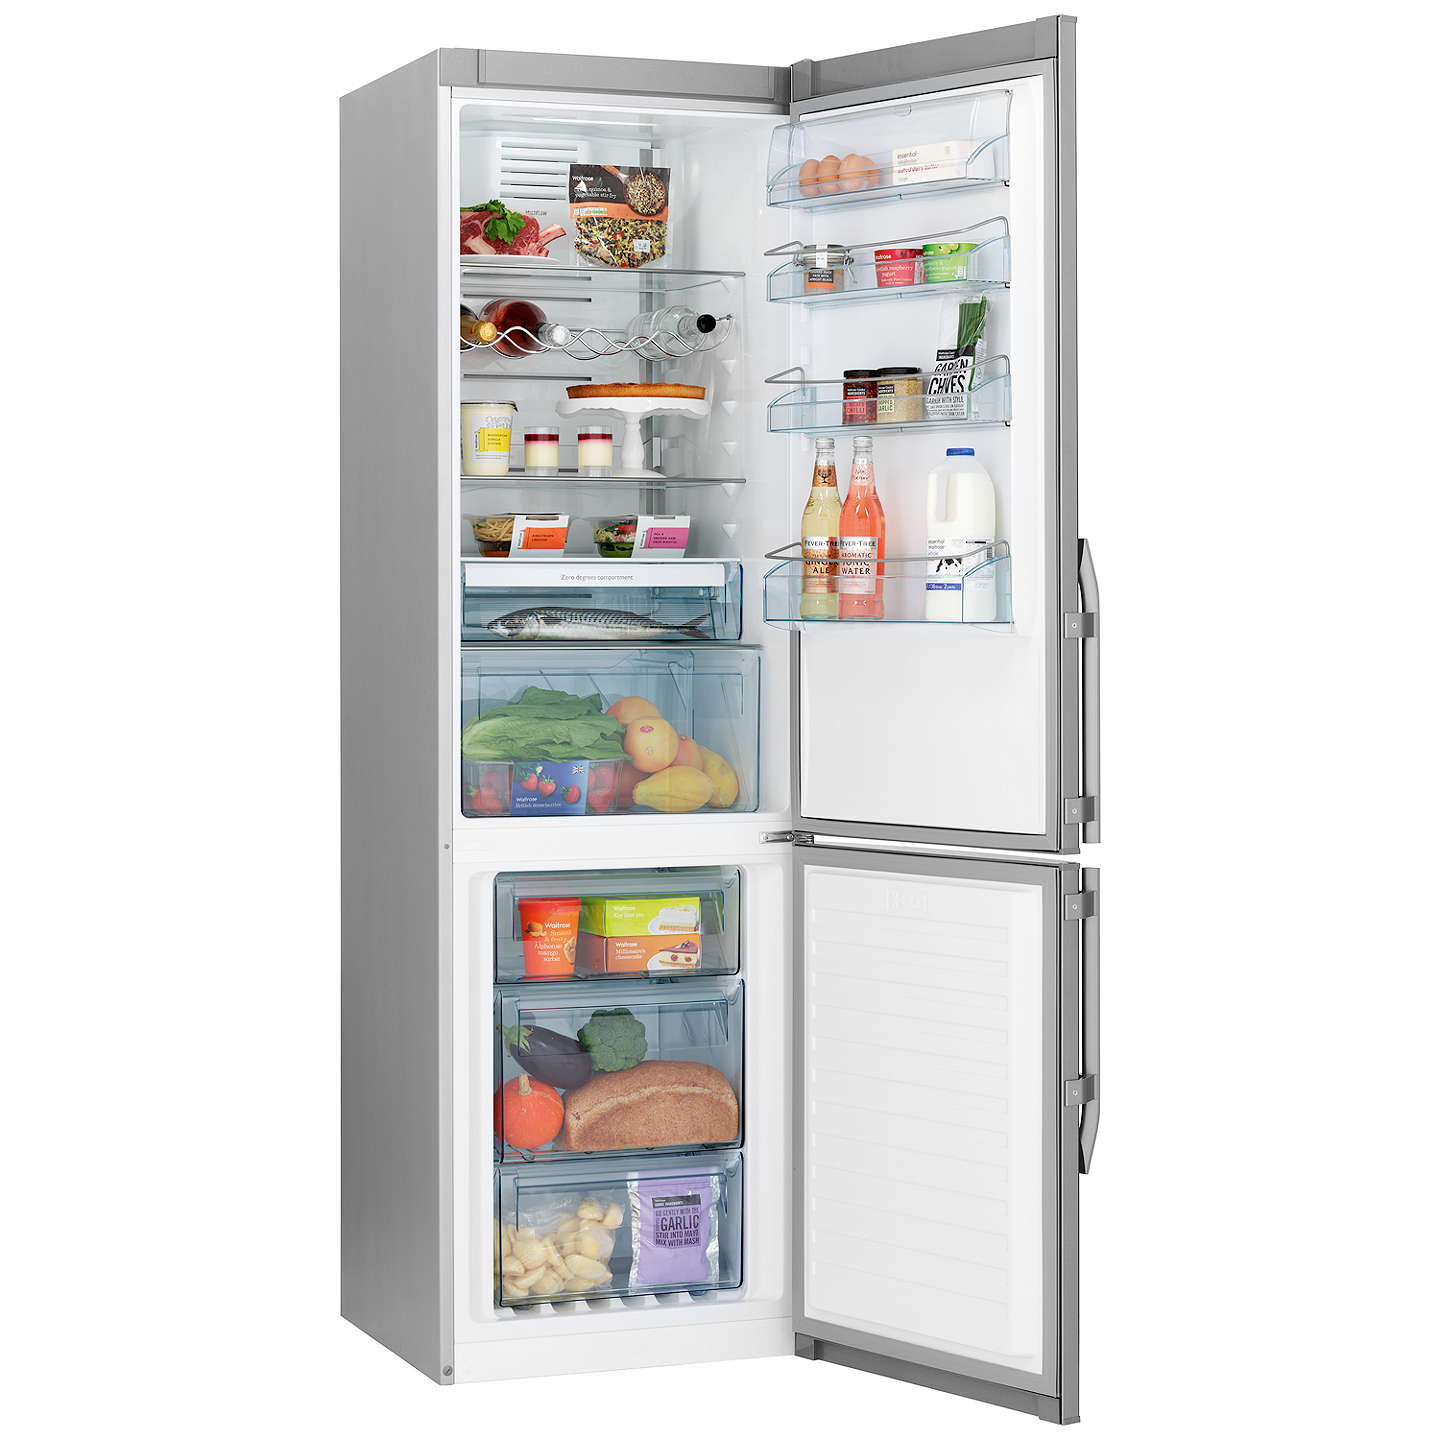 john lewis jlffs2033 freestanding fridge freezer a energy rating rh johnlewis com Zero Dark Th Zer Name